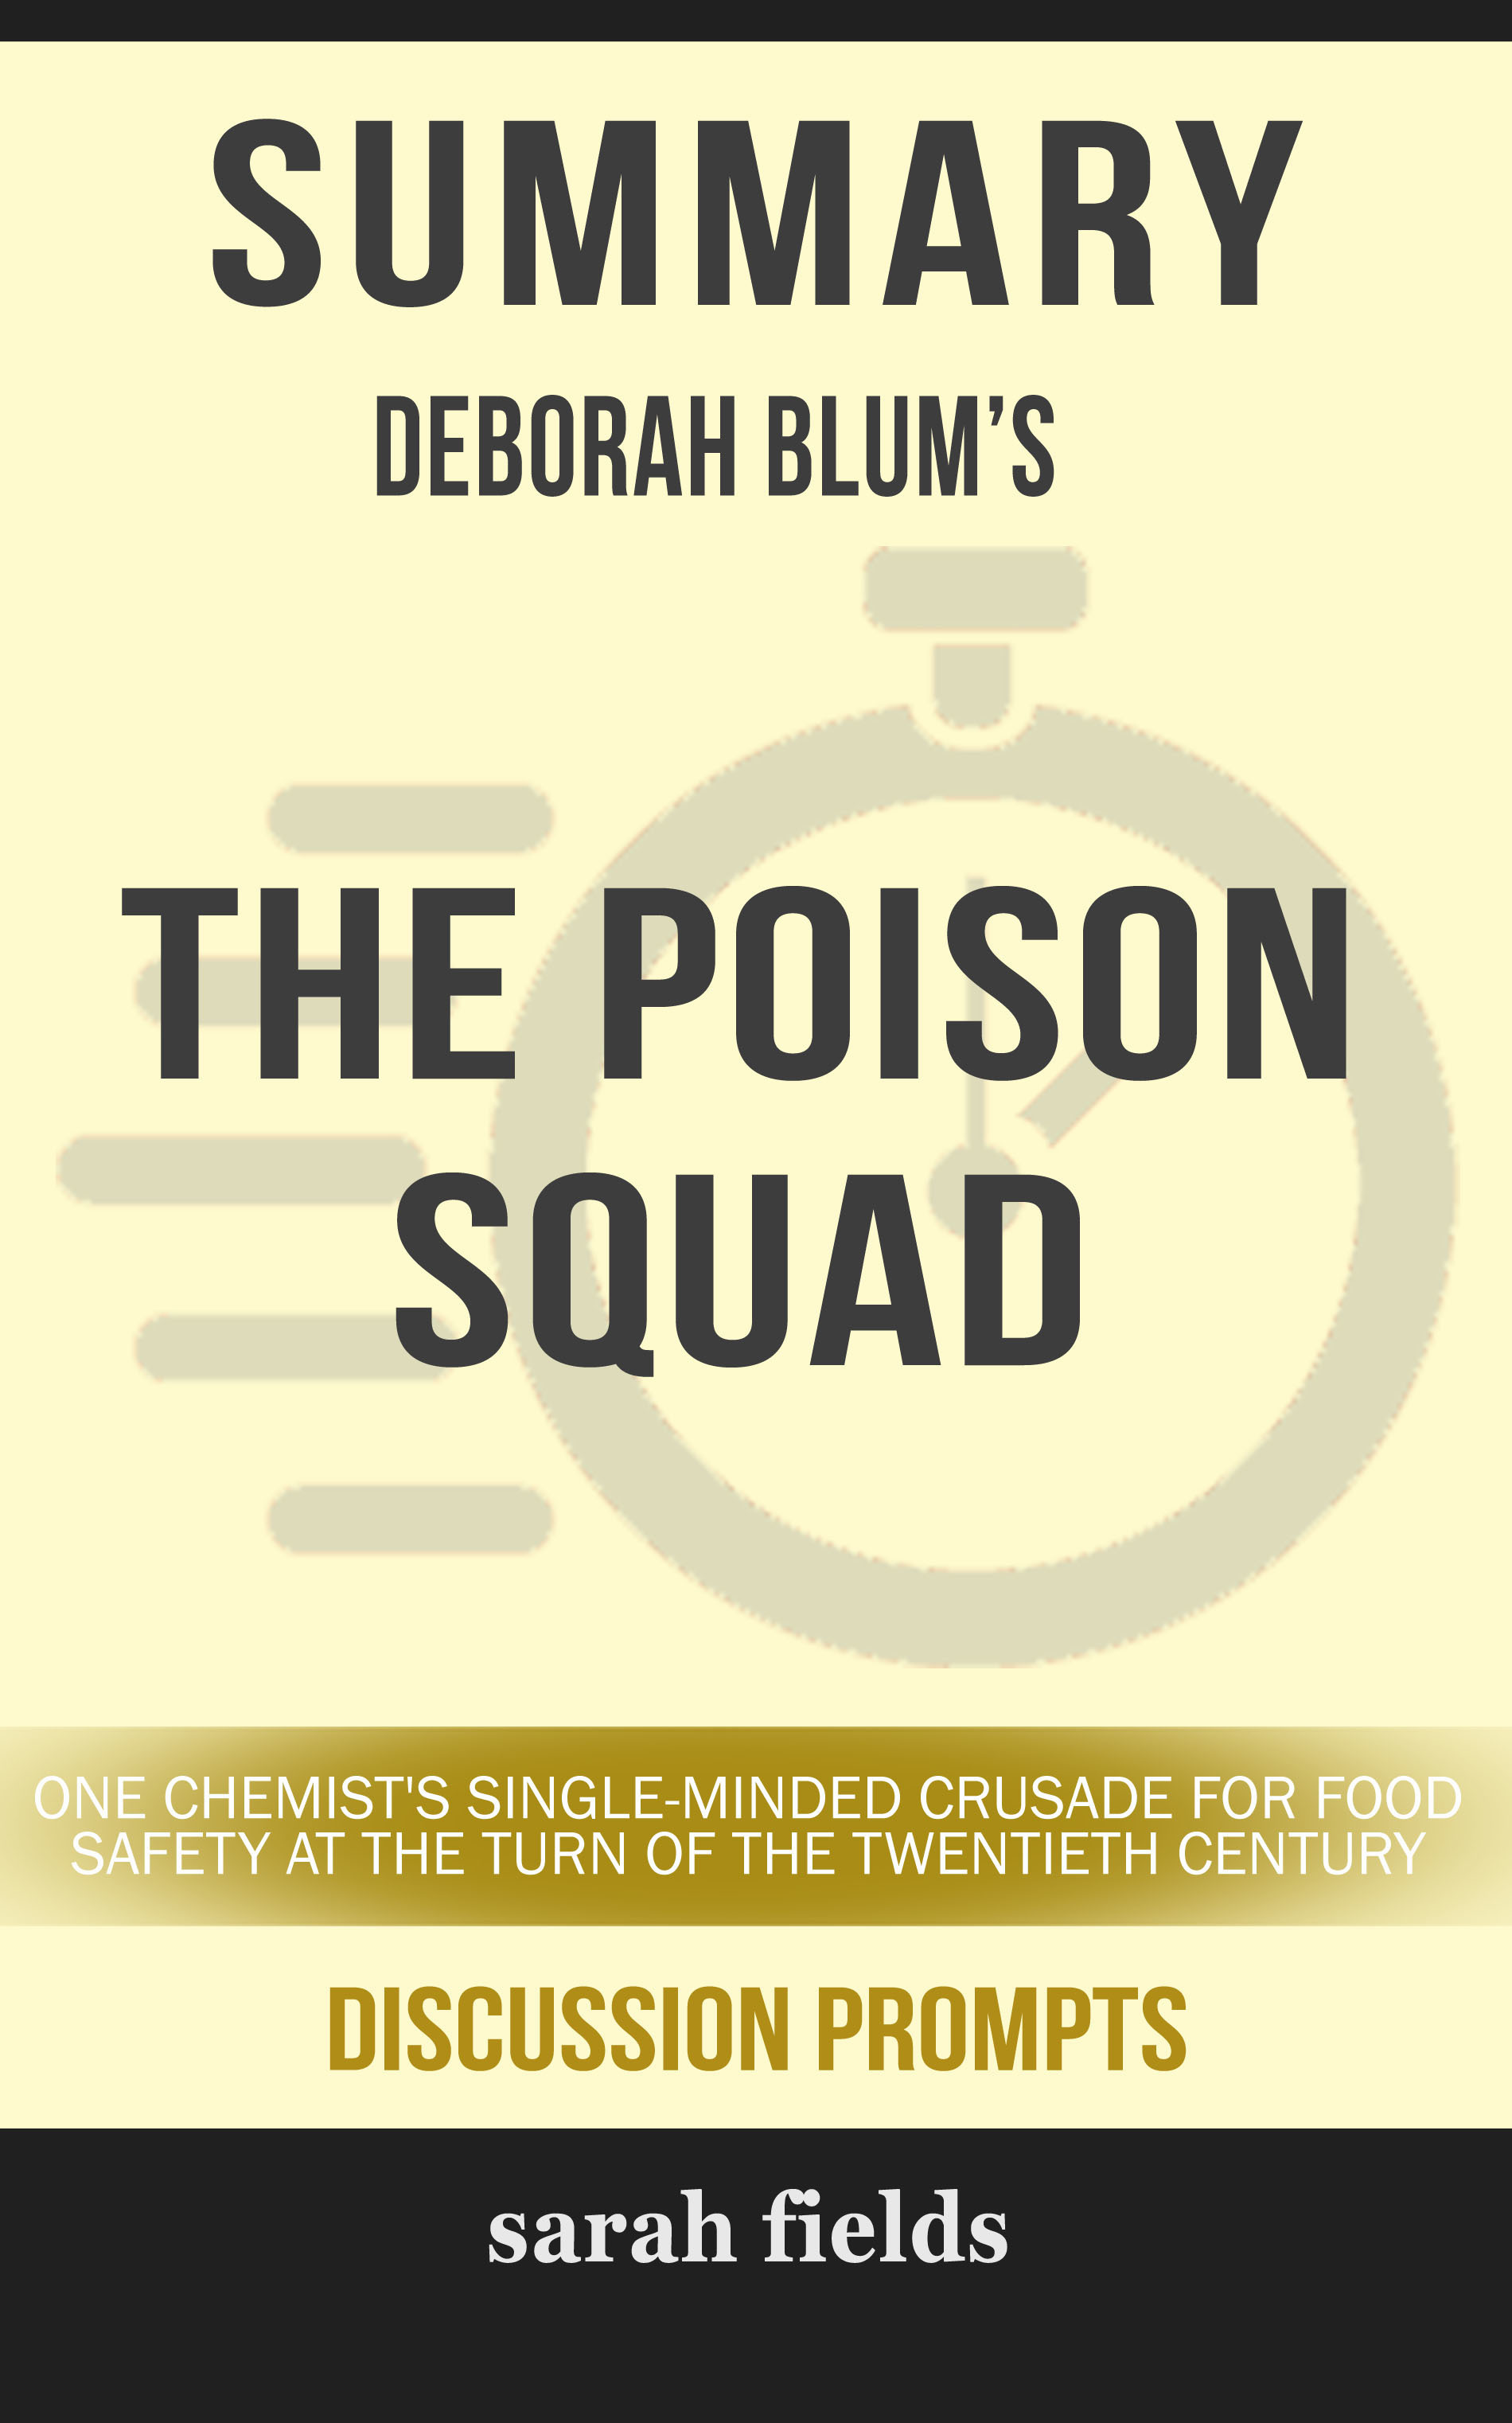 Summary of The Poison Squad: One Chemist's Single-Minded Crusade for Food Safety at the Turn of the Twentieth Century by Deborah Blum